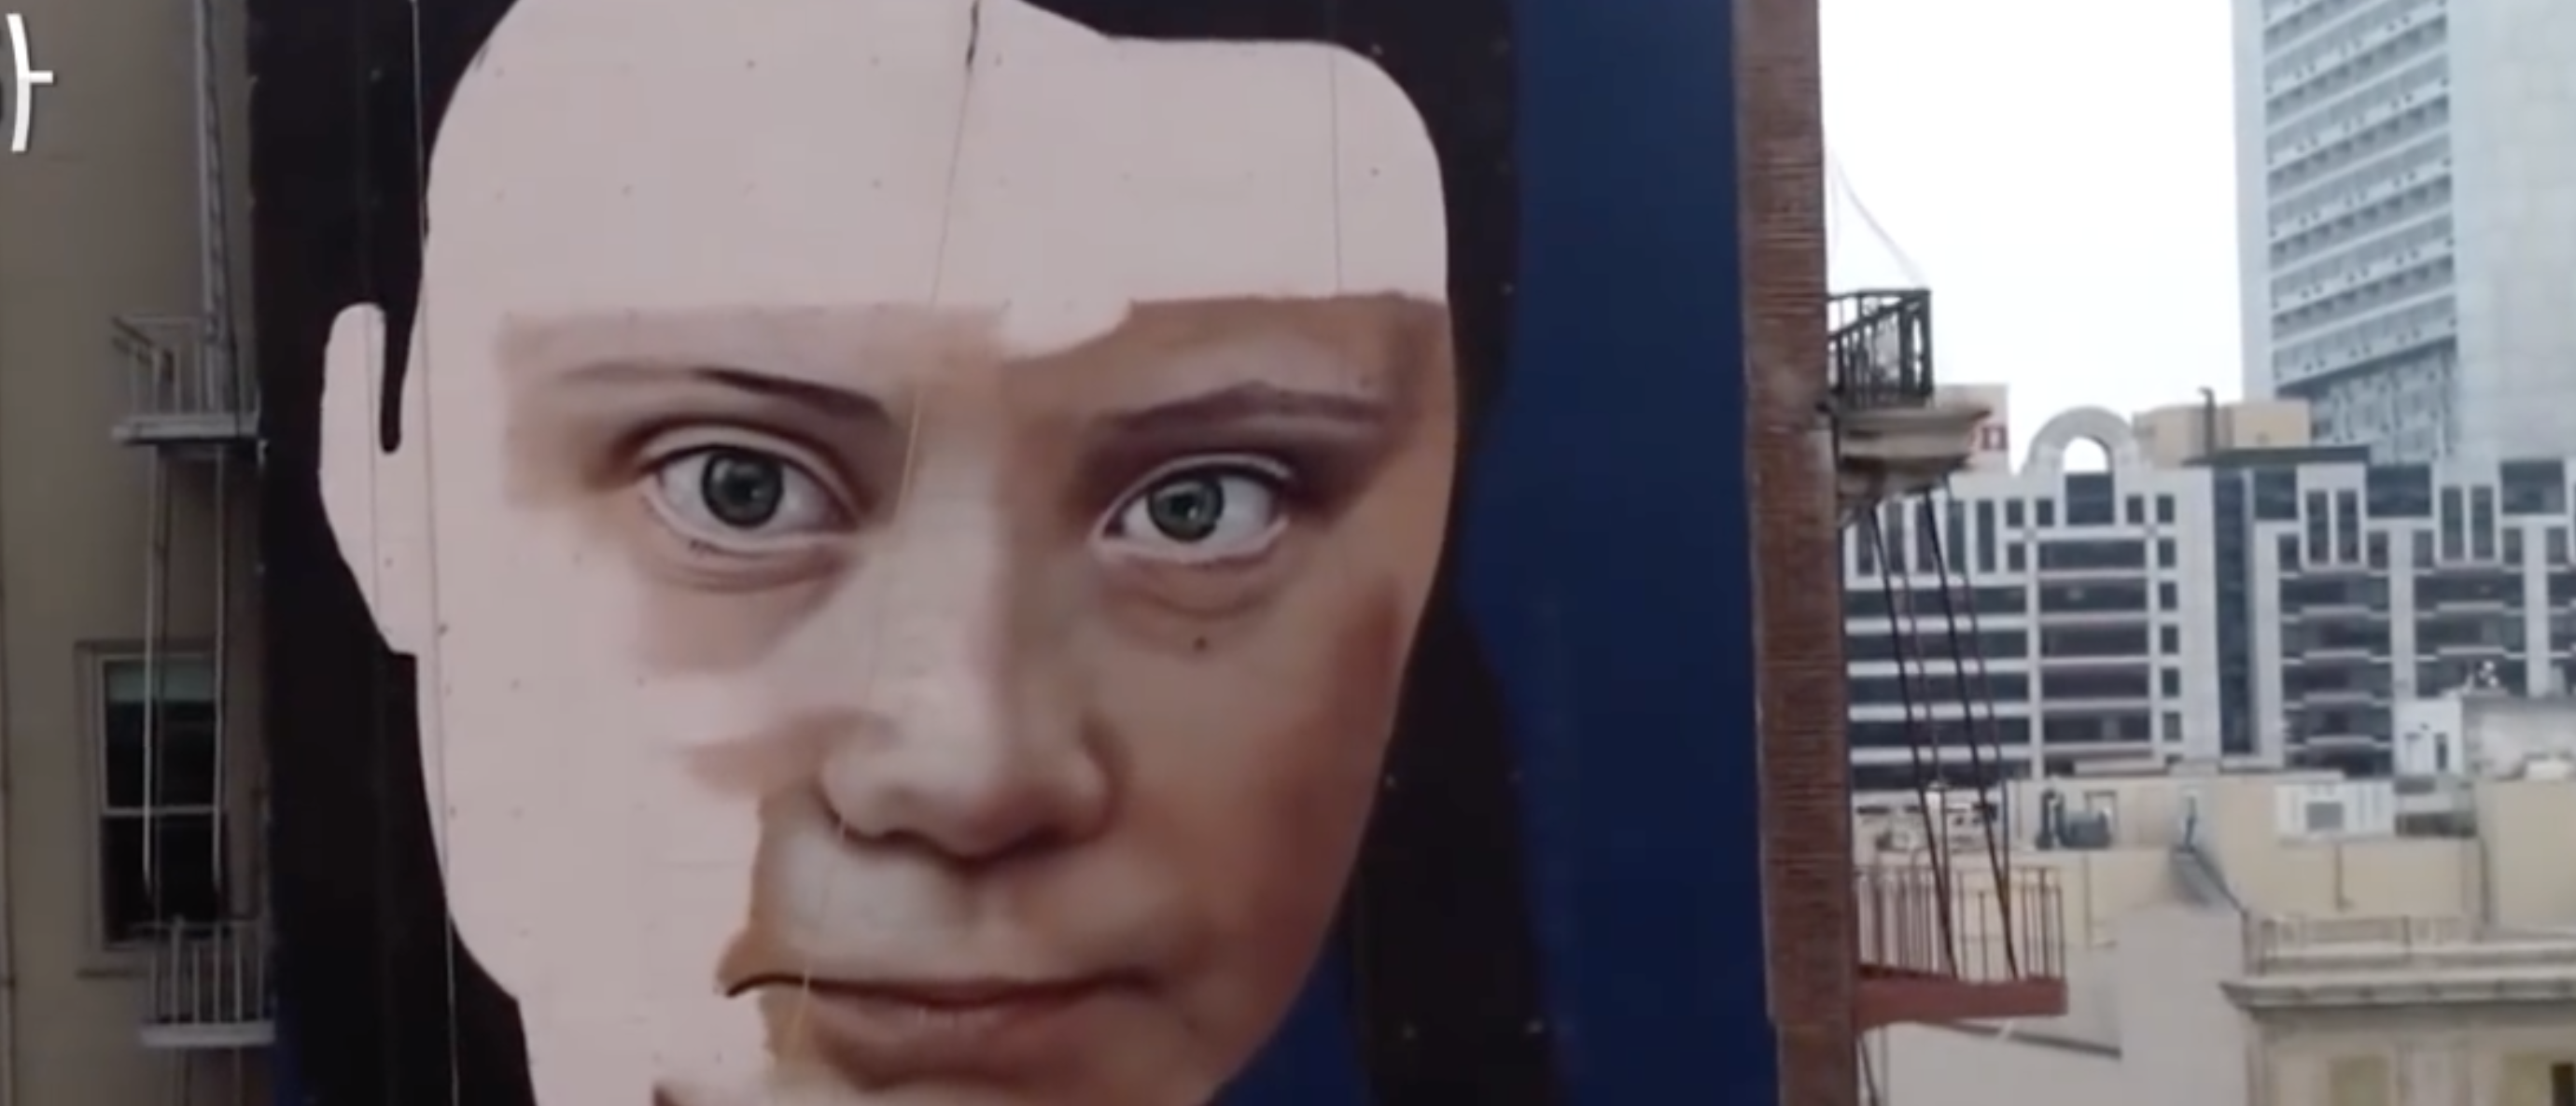 Here's How San Francisco's Greta Thunberg Mural Impacts The Environment